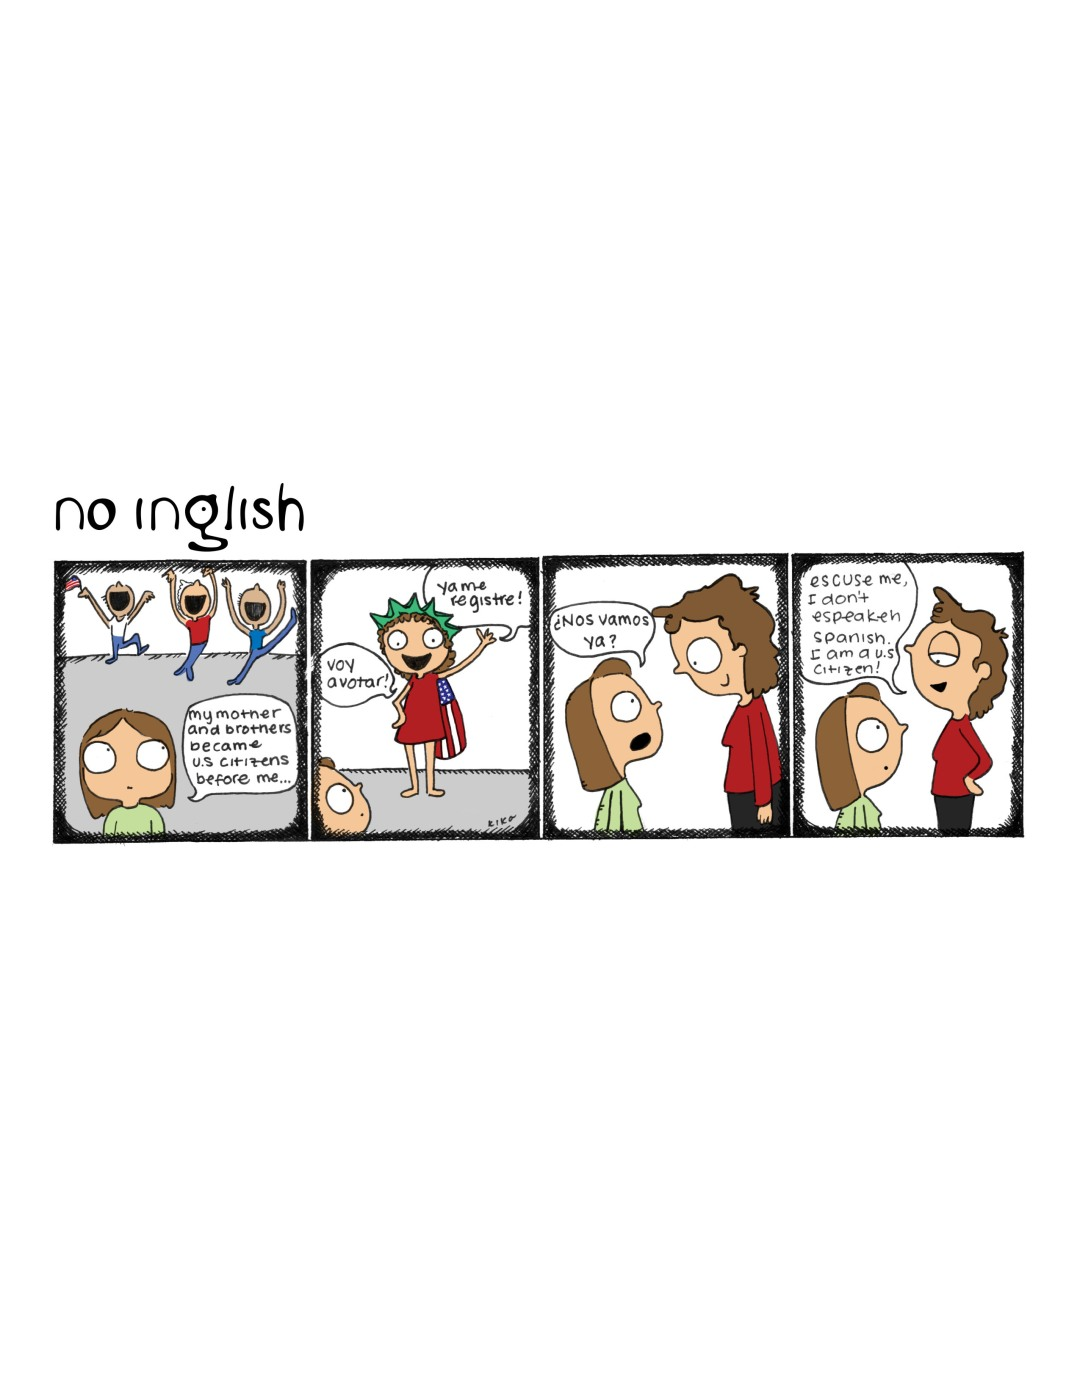 no-inglish_theonlyonenotacitizen